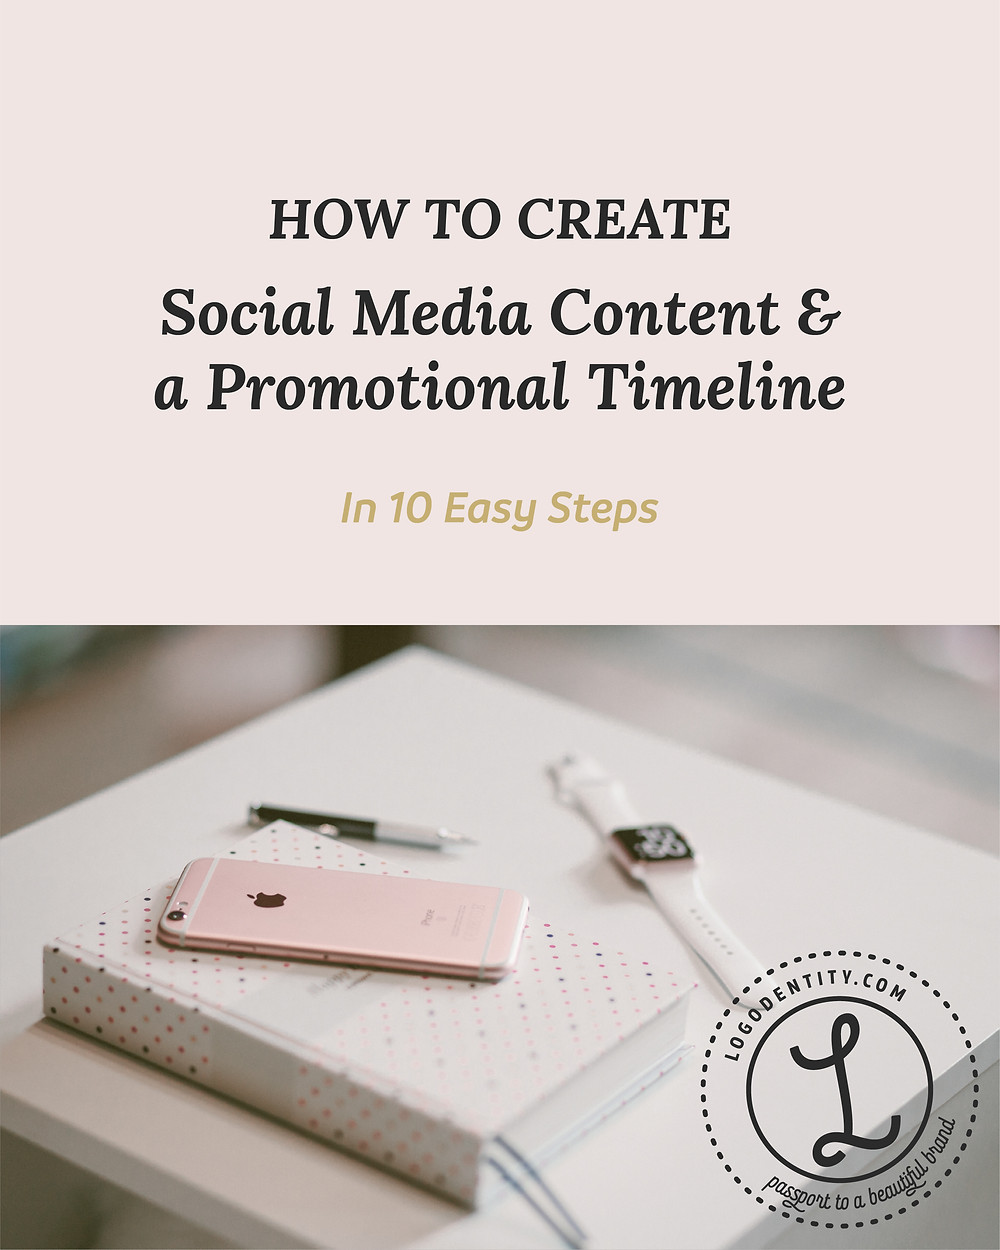 Create a Social Media Content & a Promotional Timeline in 10 Easy Steps